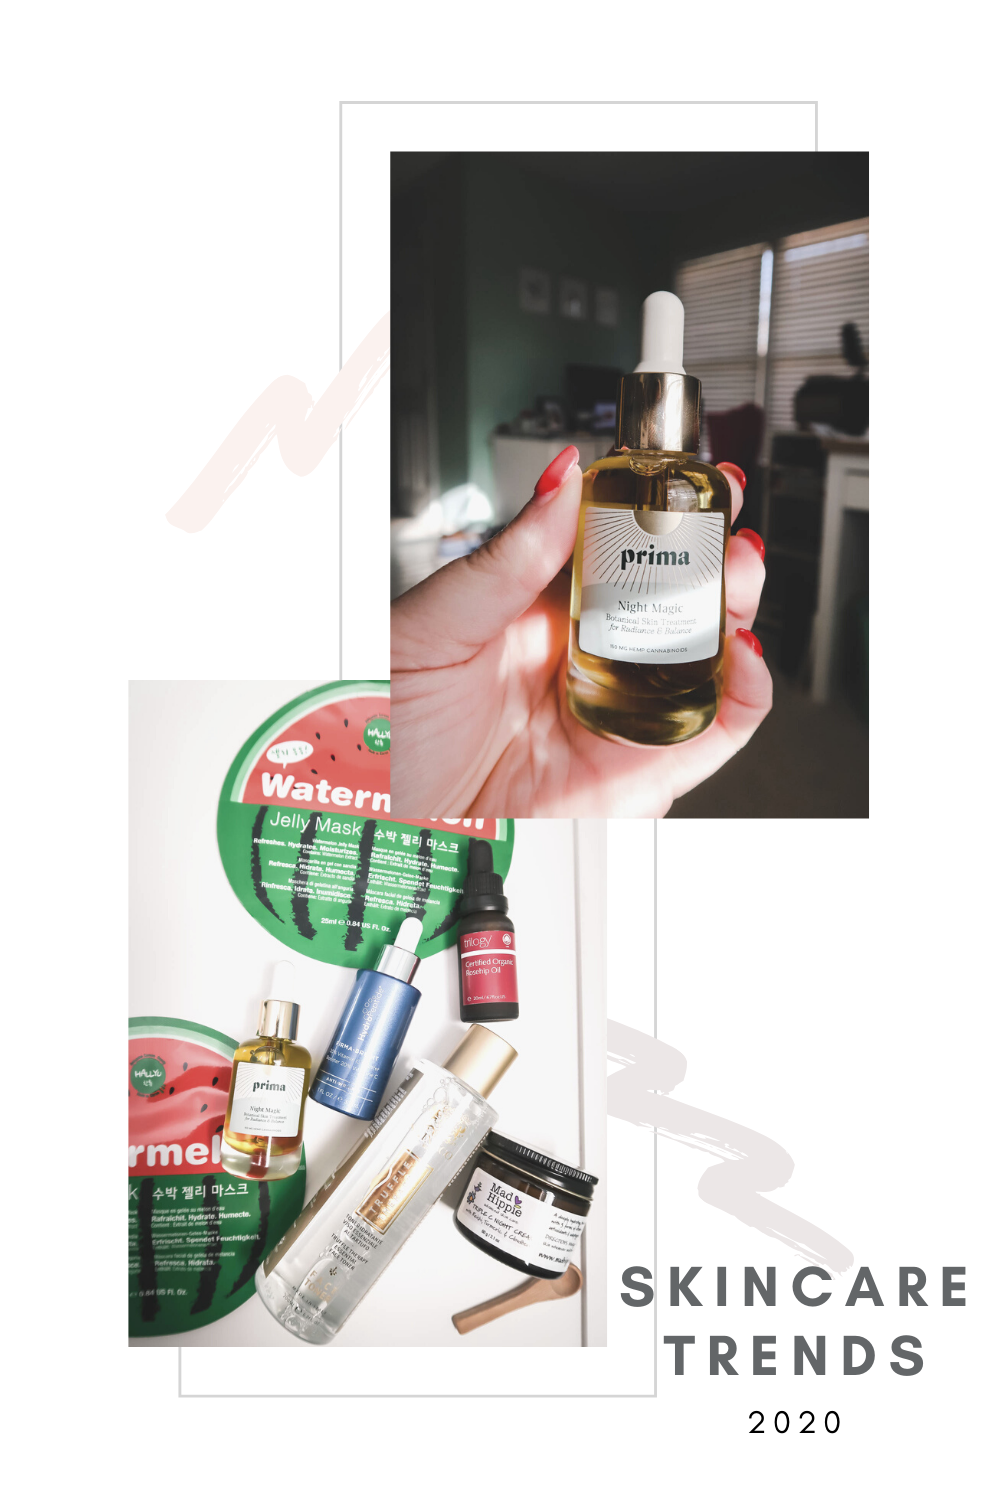 Sharing My Skincare Trends For 2020 That I M Predicting Are Going To Be Popular We Re Talking About Products An In 2020 Skin Care Skin Care Tools Skincare Ingredients